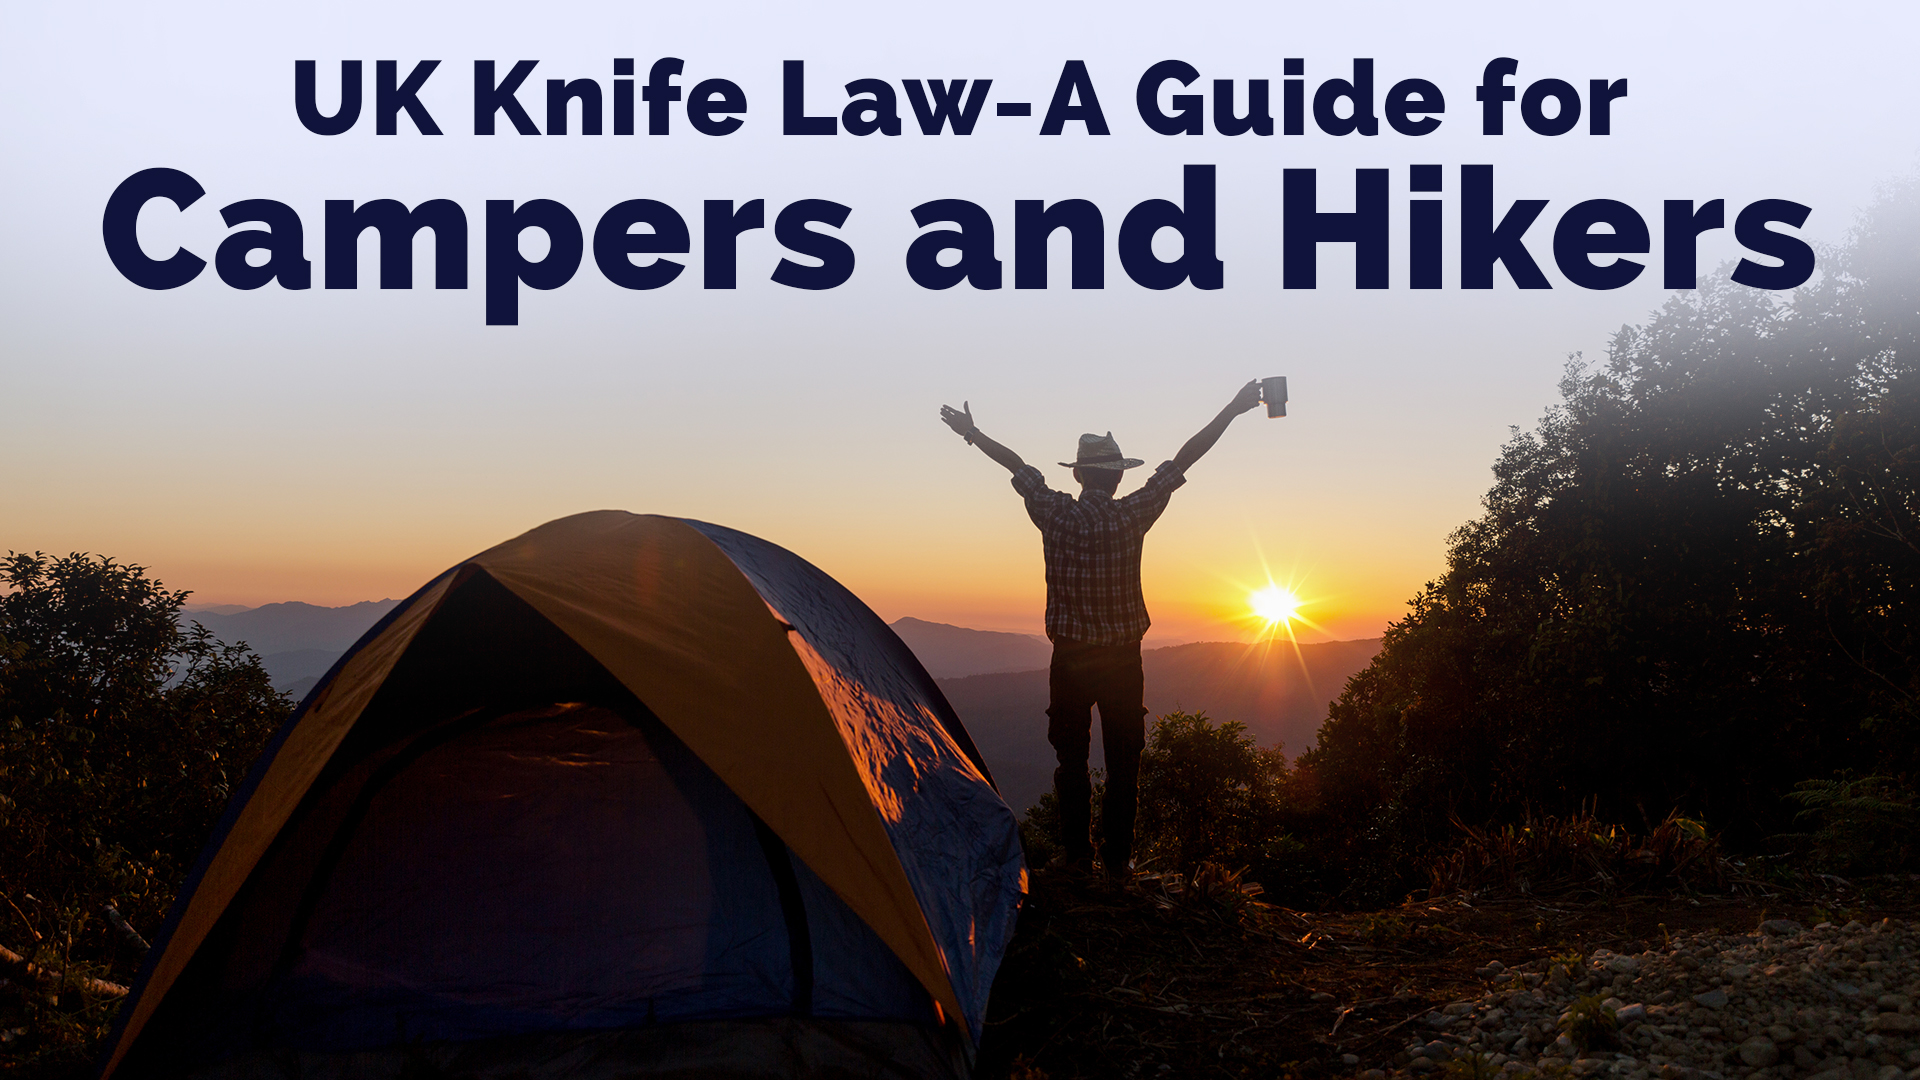 UK Knife Law — A Guide for Campers and Hikers